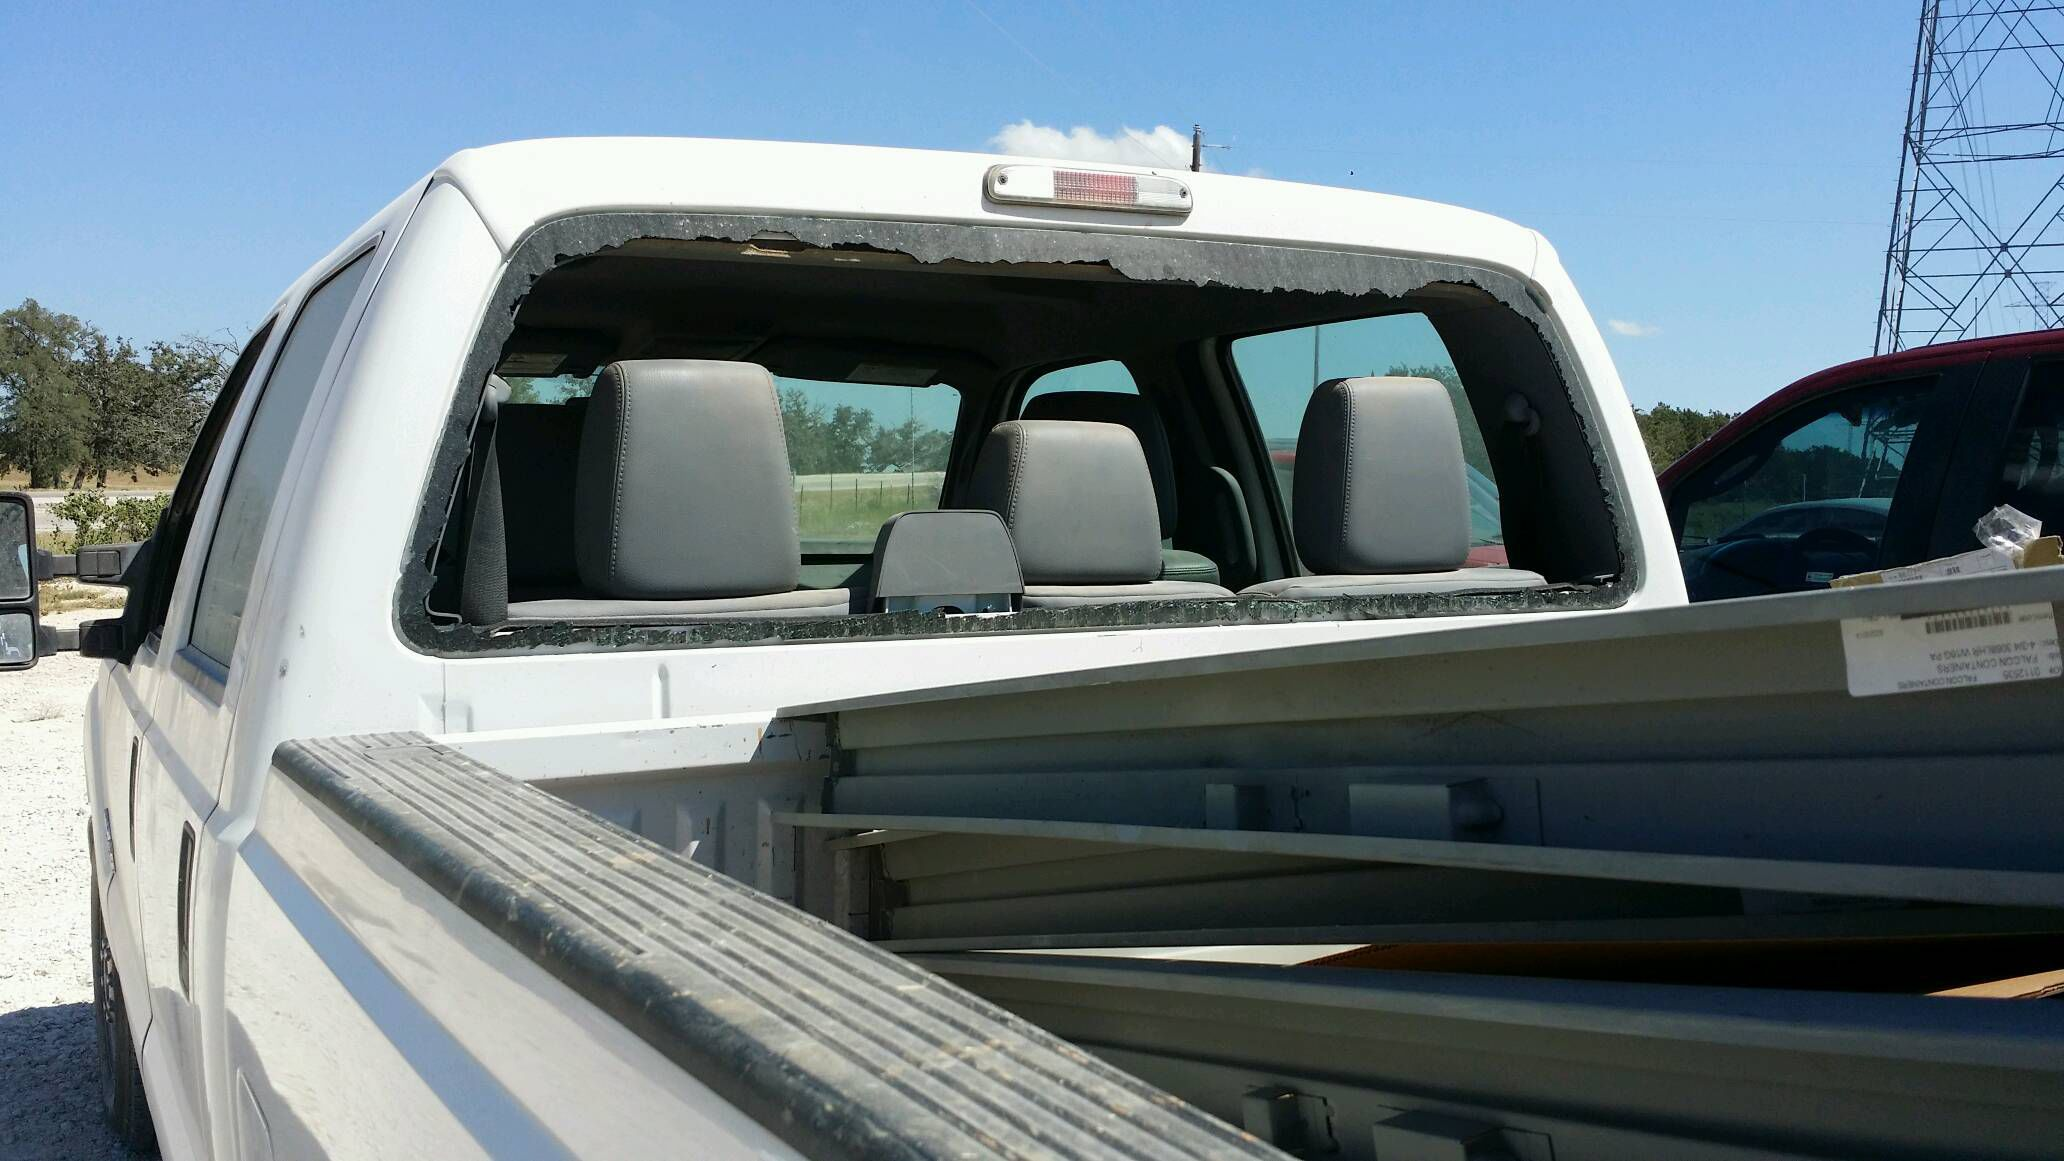 Back Window Replacement Cost 8 Week Challenge Boot Camp